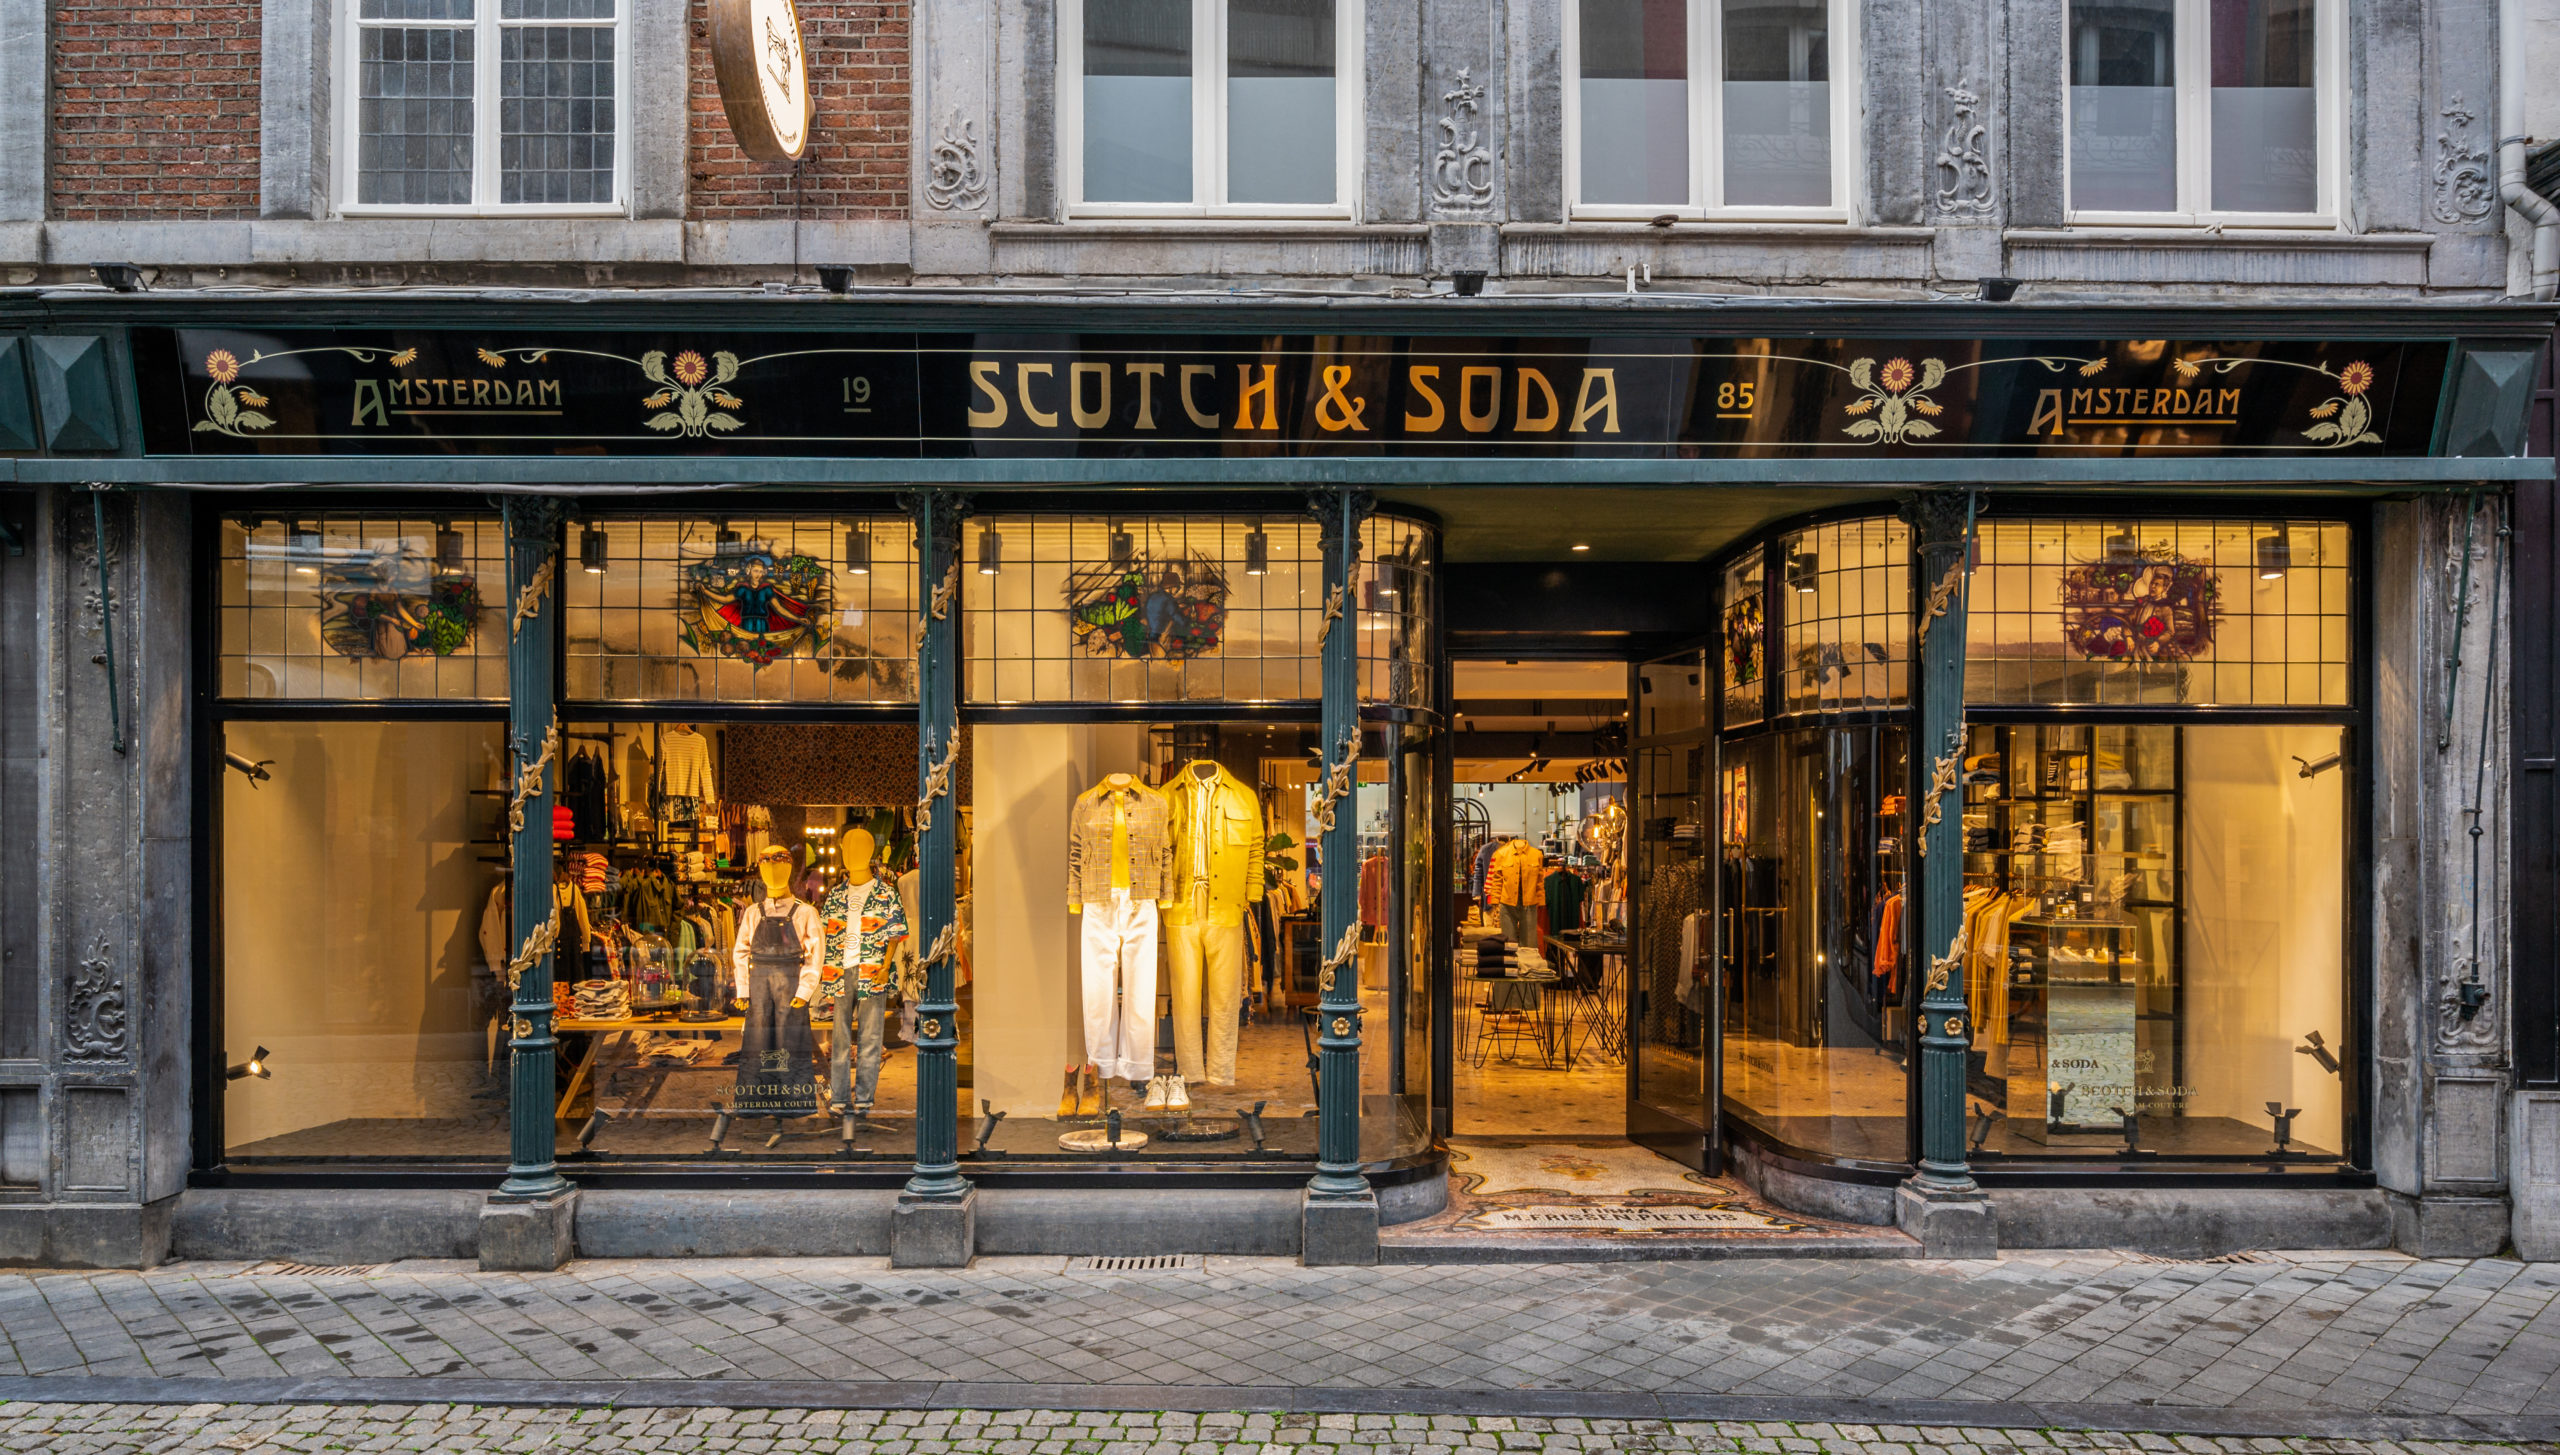 Scotch & Soda-Maastricht-071020-_-01-_-by-Laurent-Stevens